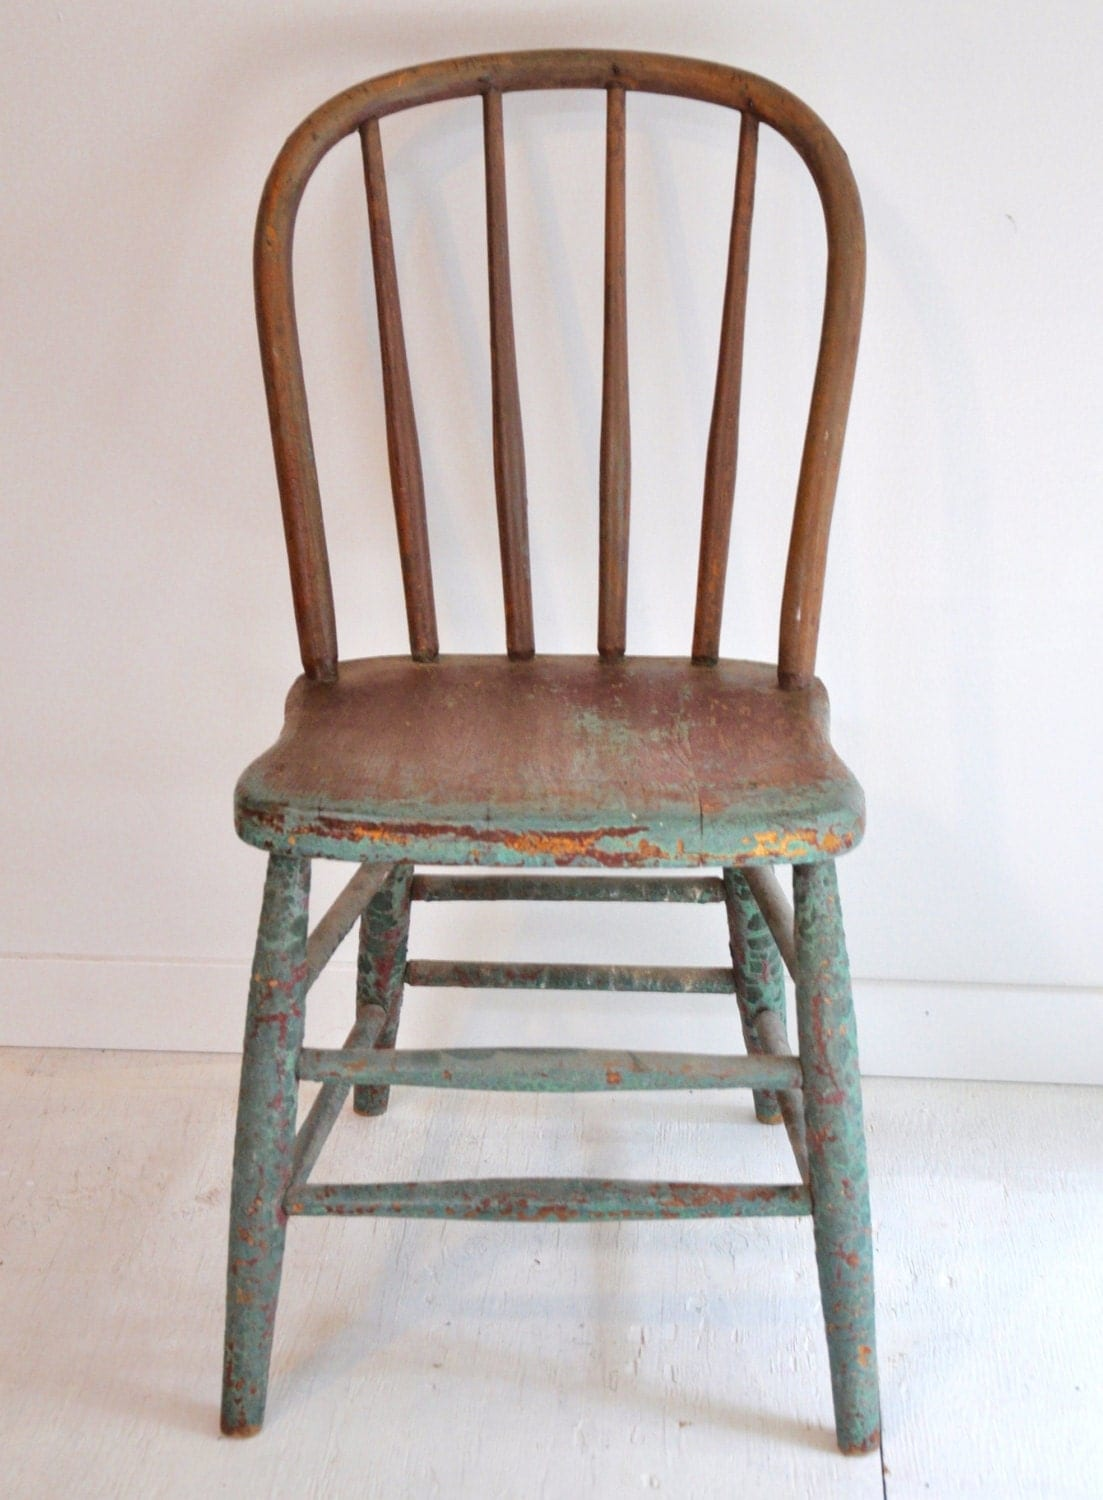 Very Impressive portraiture of Old Distressed Painted Wood Chair – Haute Juice with #6F4737 color and 1103x1500 pixels